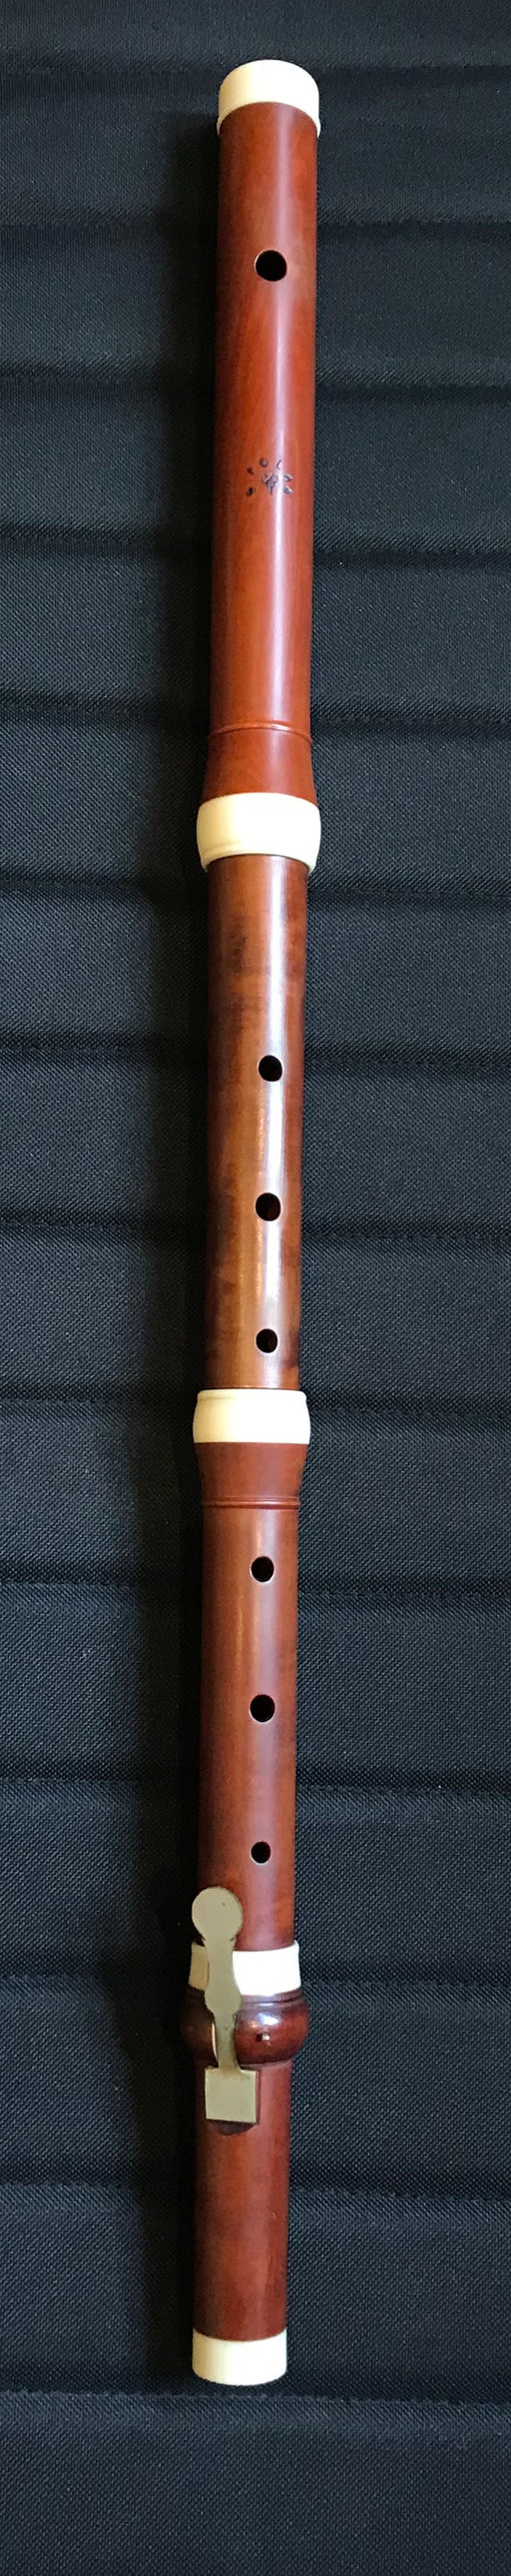 1153L Polak Flute after Beukers, a=415 and 408